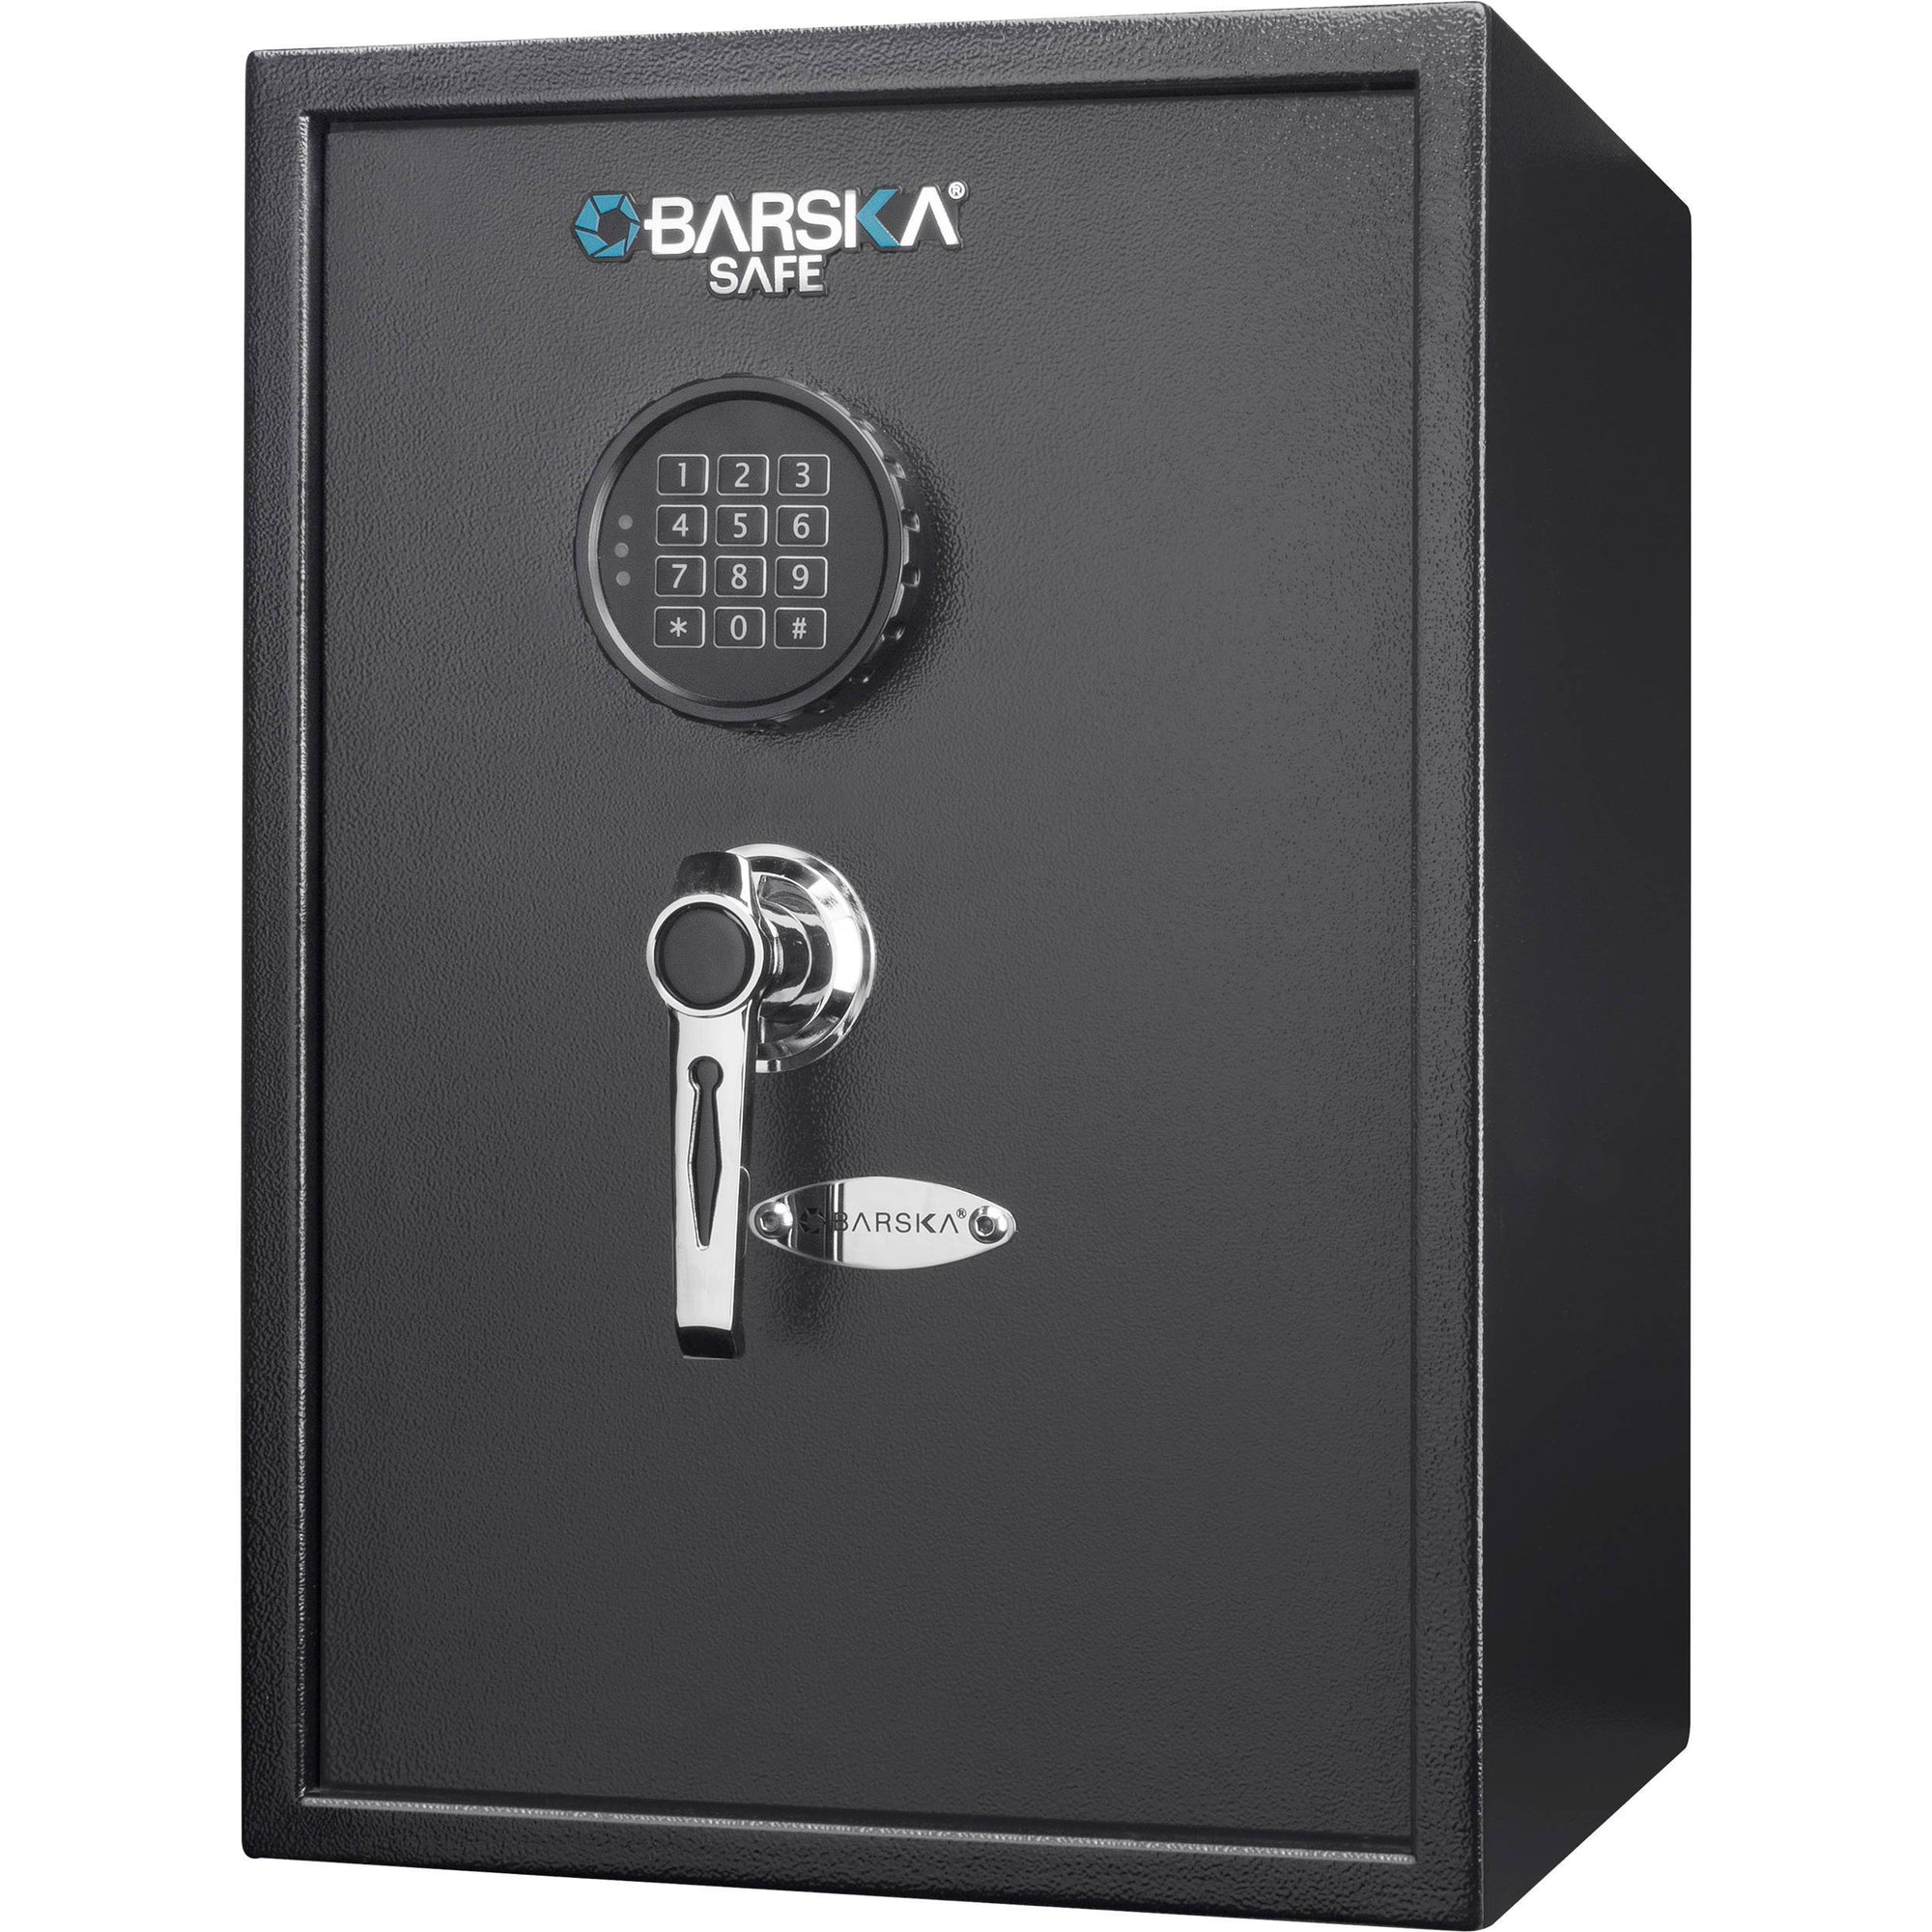 Security Safes - Barska AX13098 1.45 Cubic Ft Large Keypad Security Safe